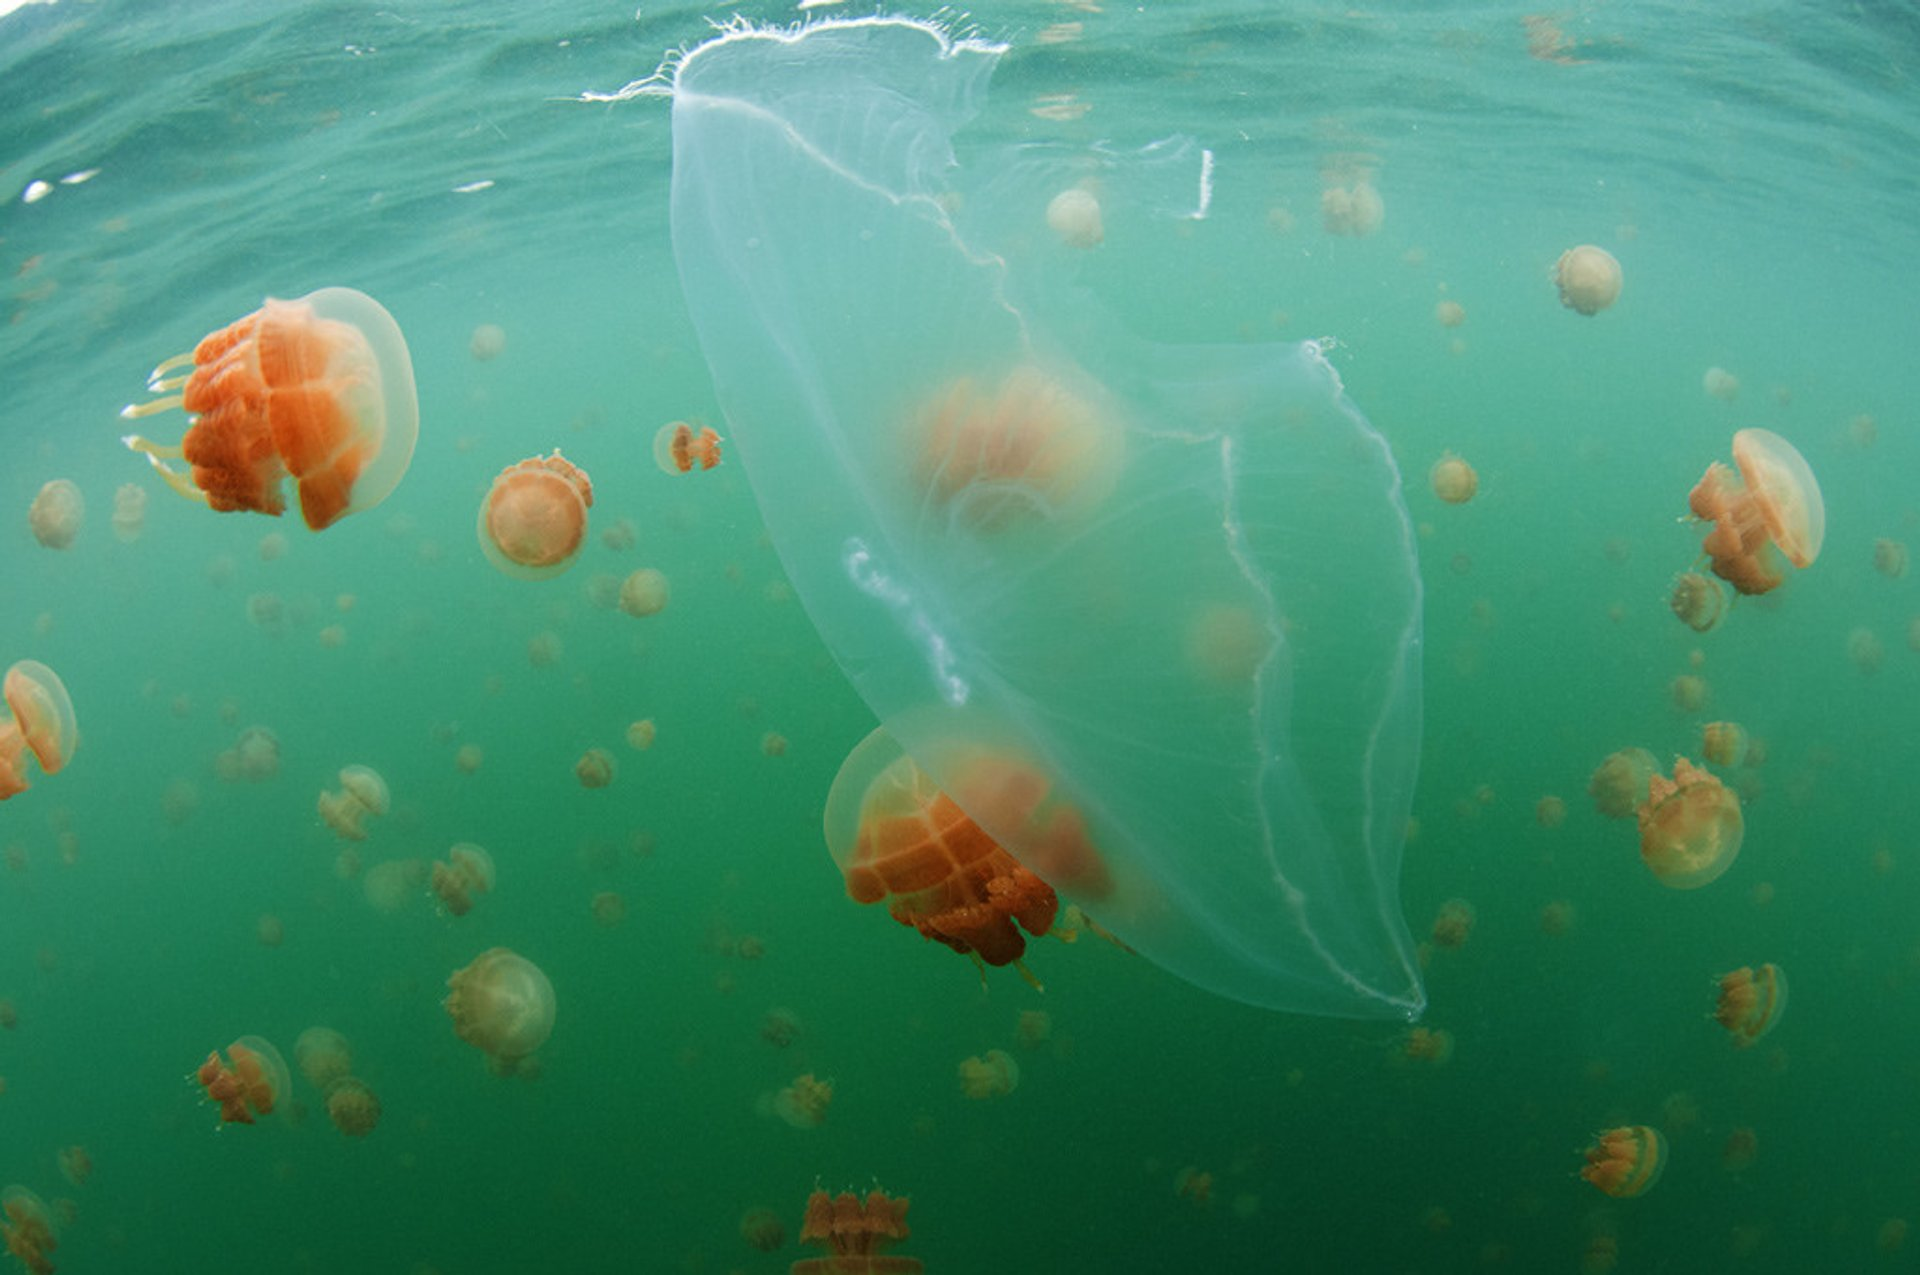 Swim with Stingless Jellyfish in Kakaban Lake in Borneo 2020 - Best Time